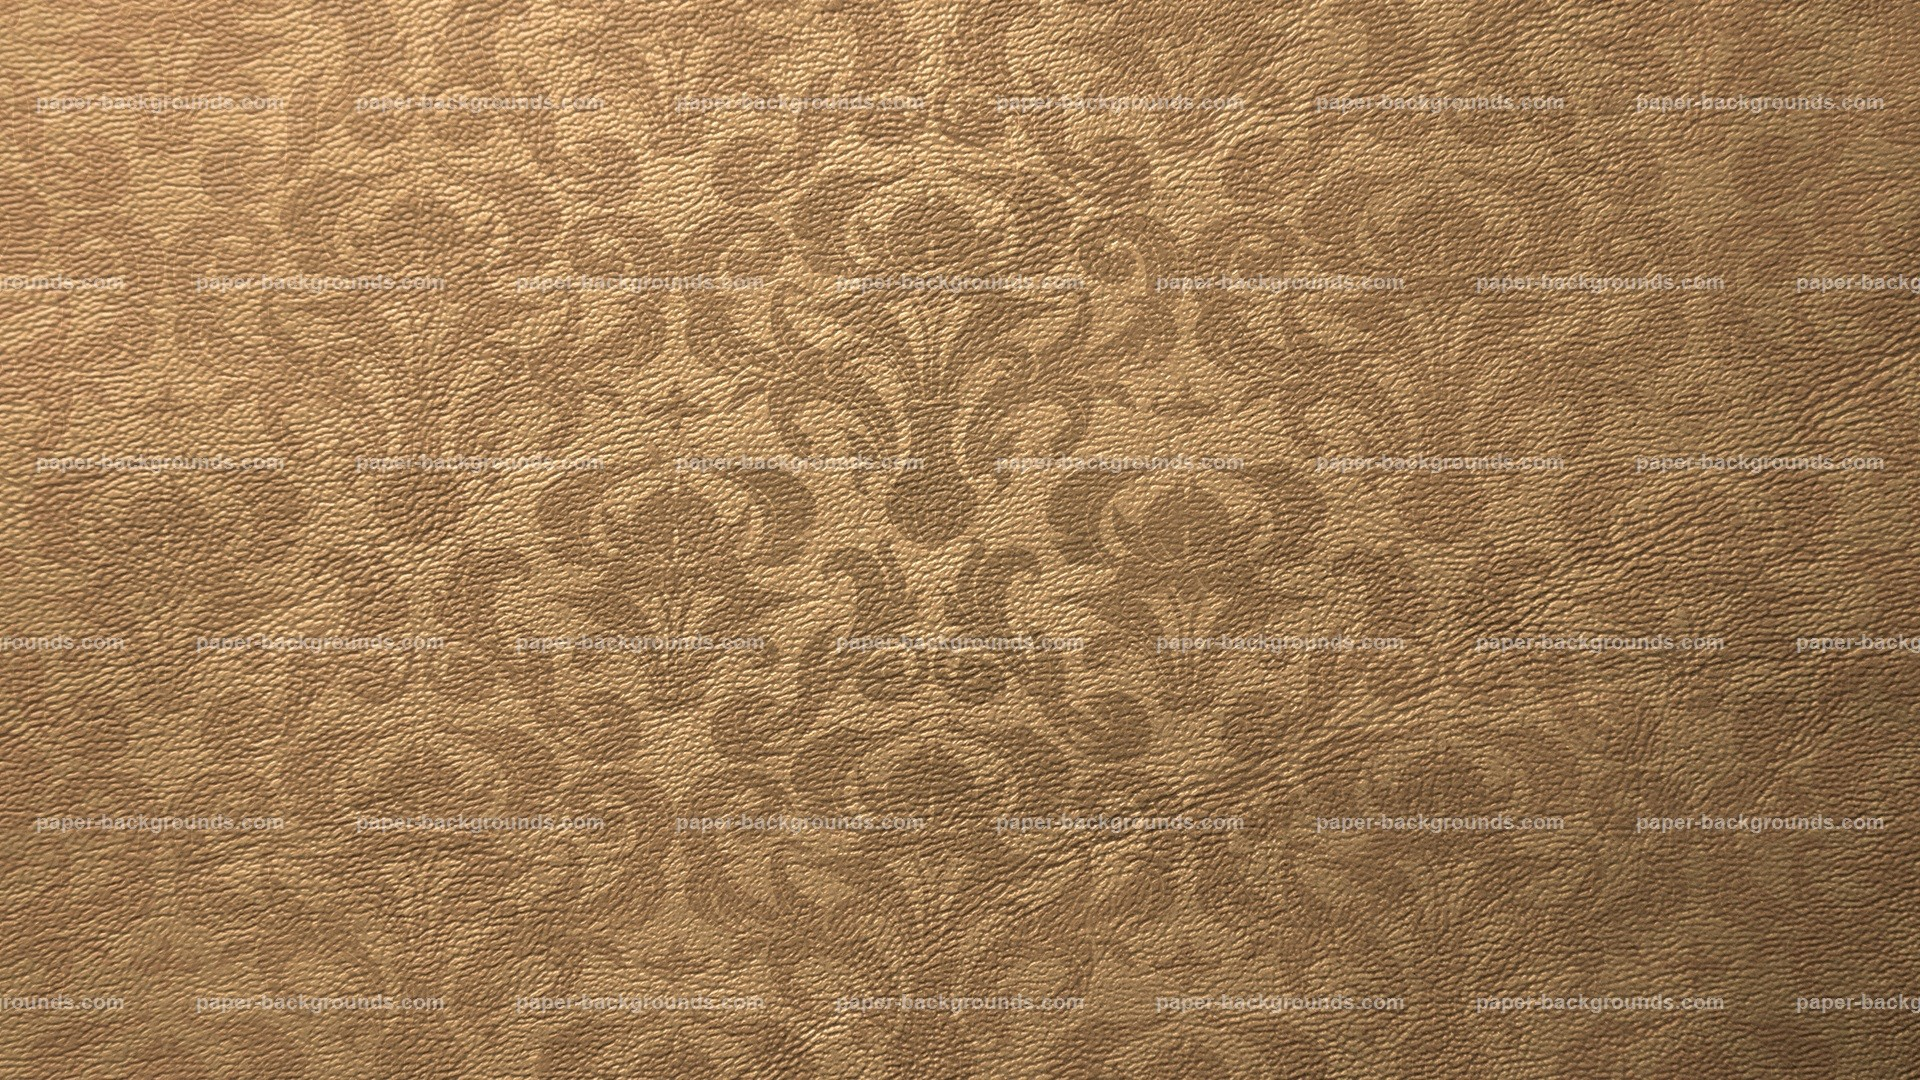 1920x1080 Light Brown Paper Background Leather Texture